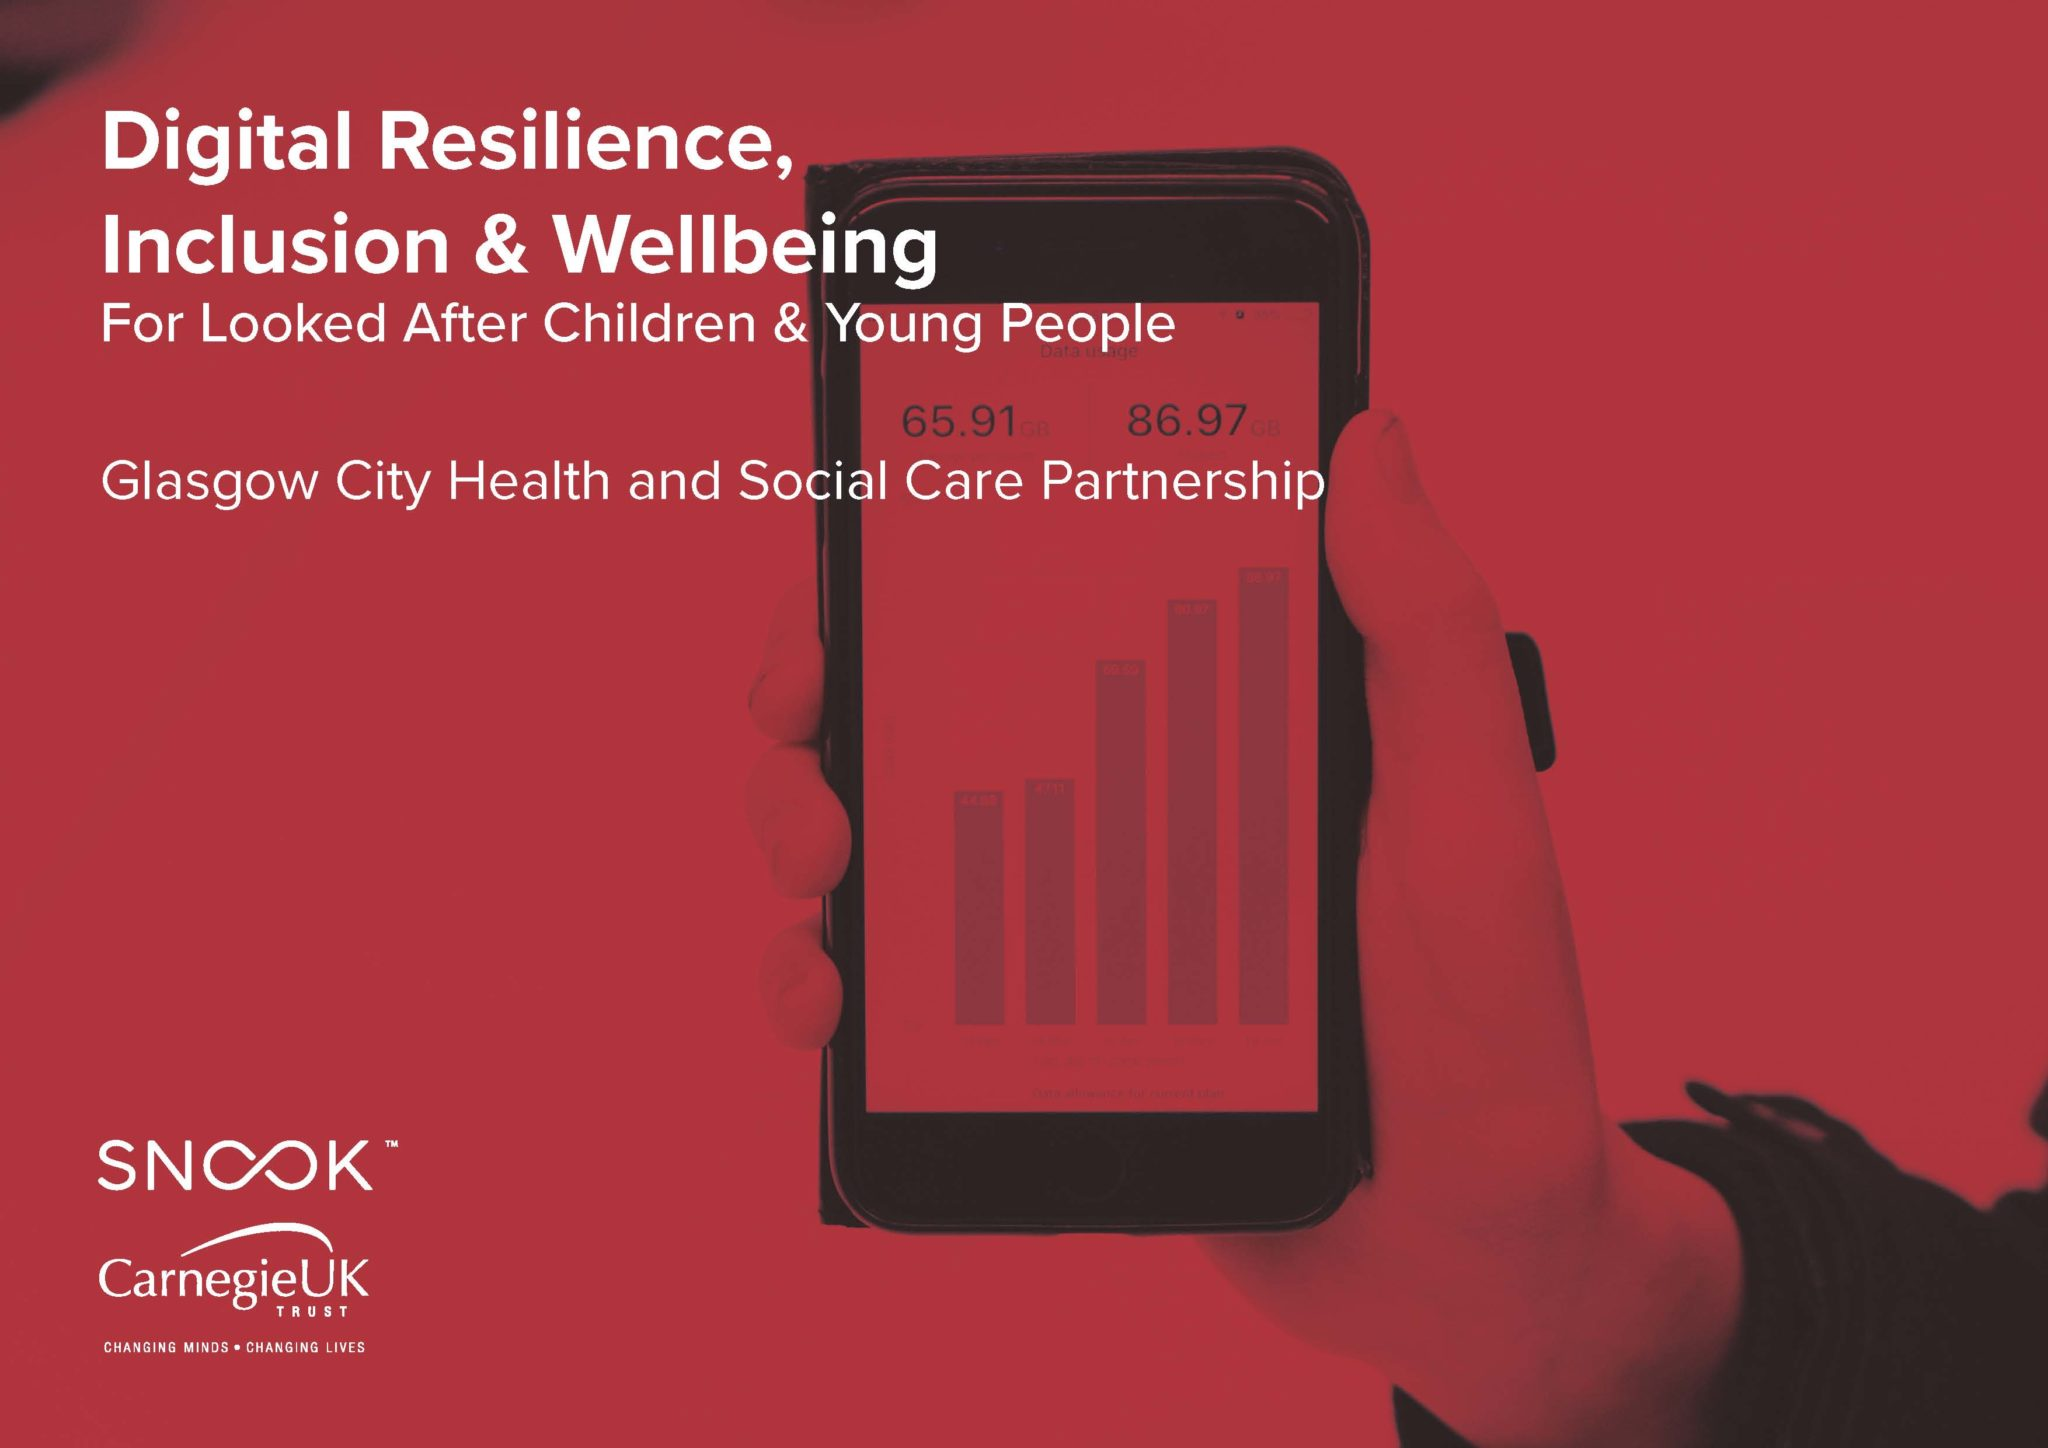 Digital Resilience, Inclusion & Wellbeing For Looked After Children & Young People